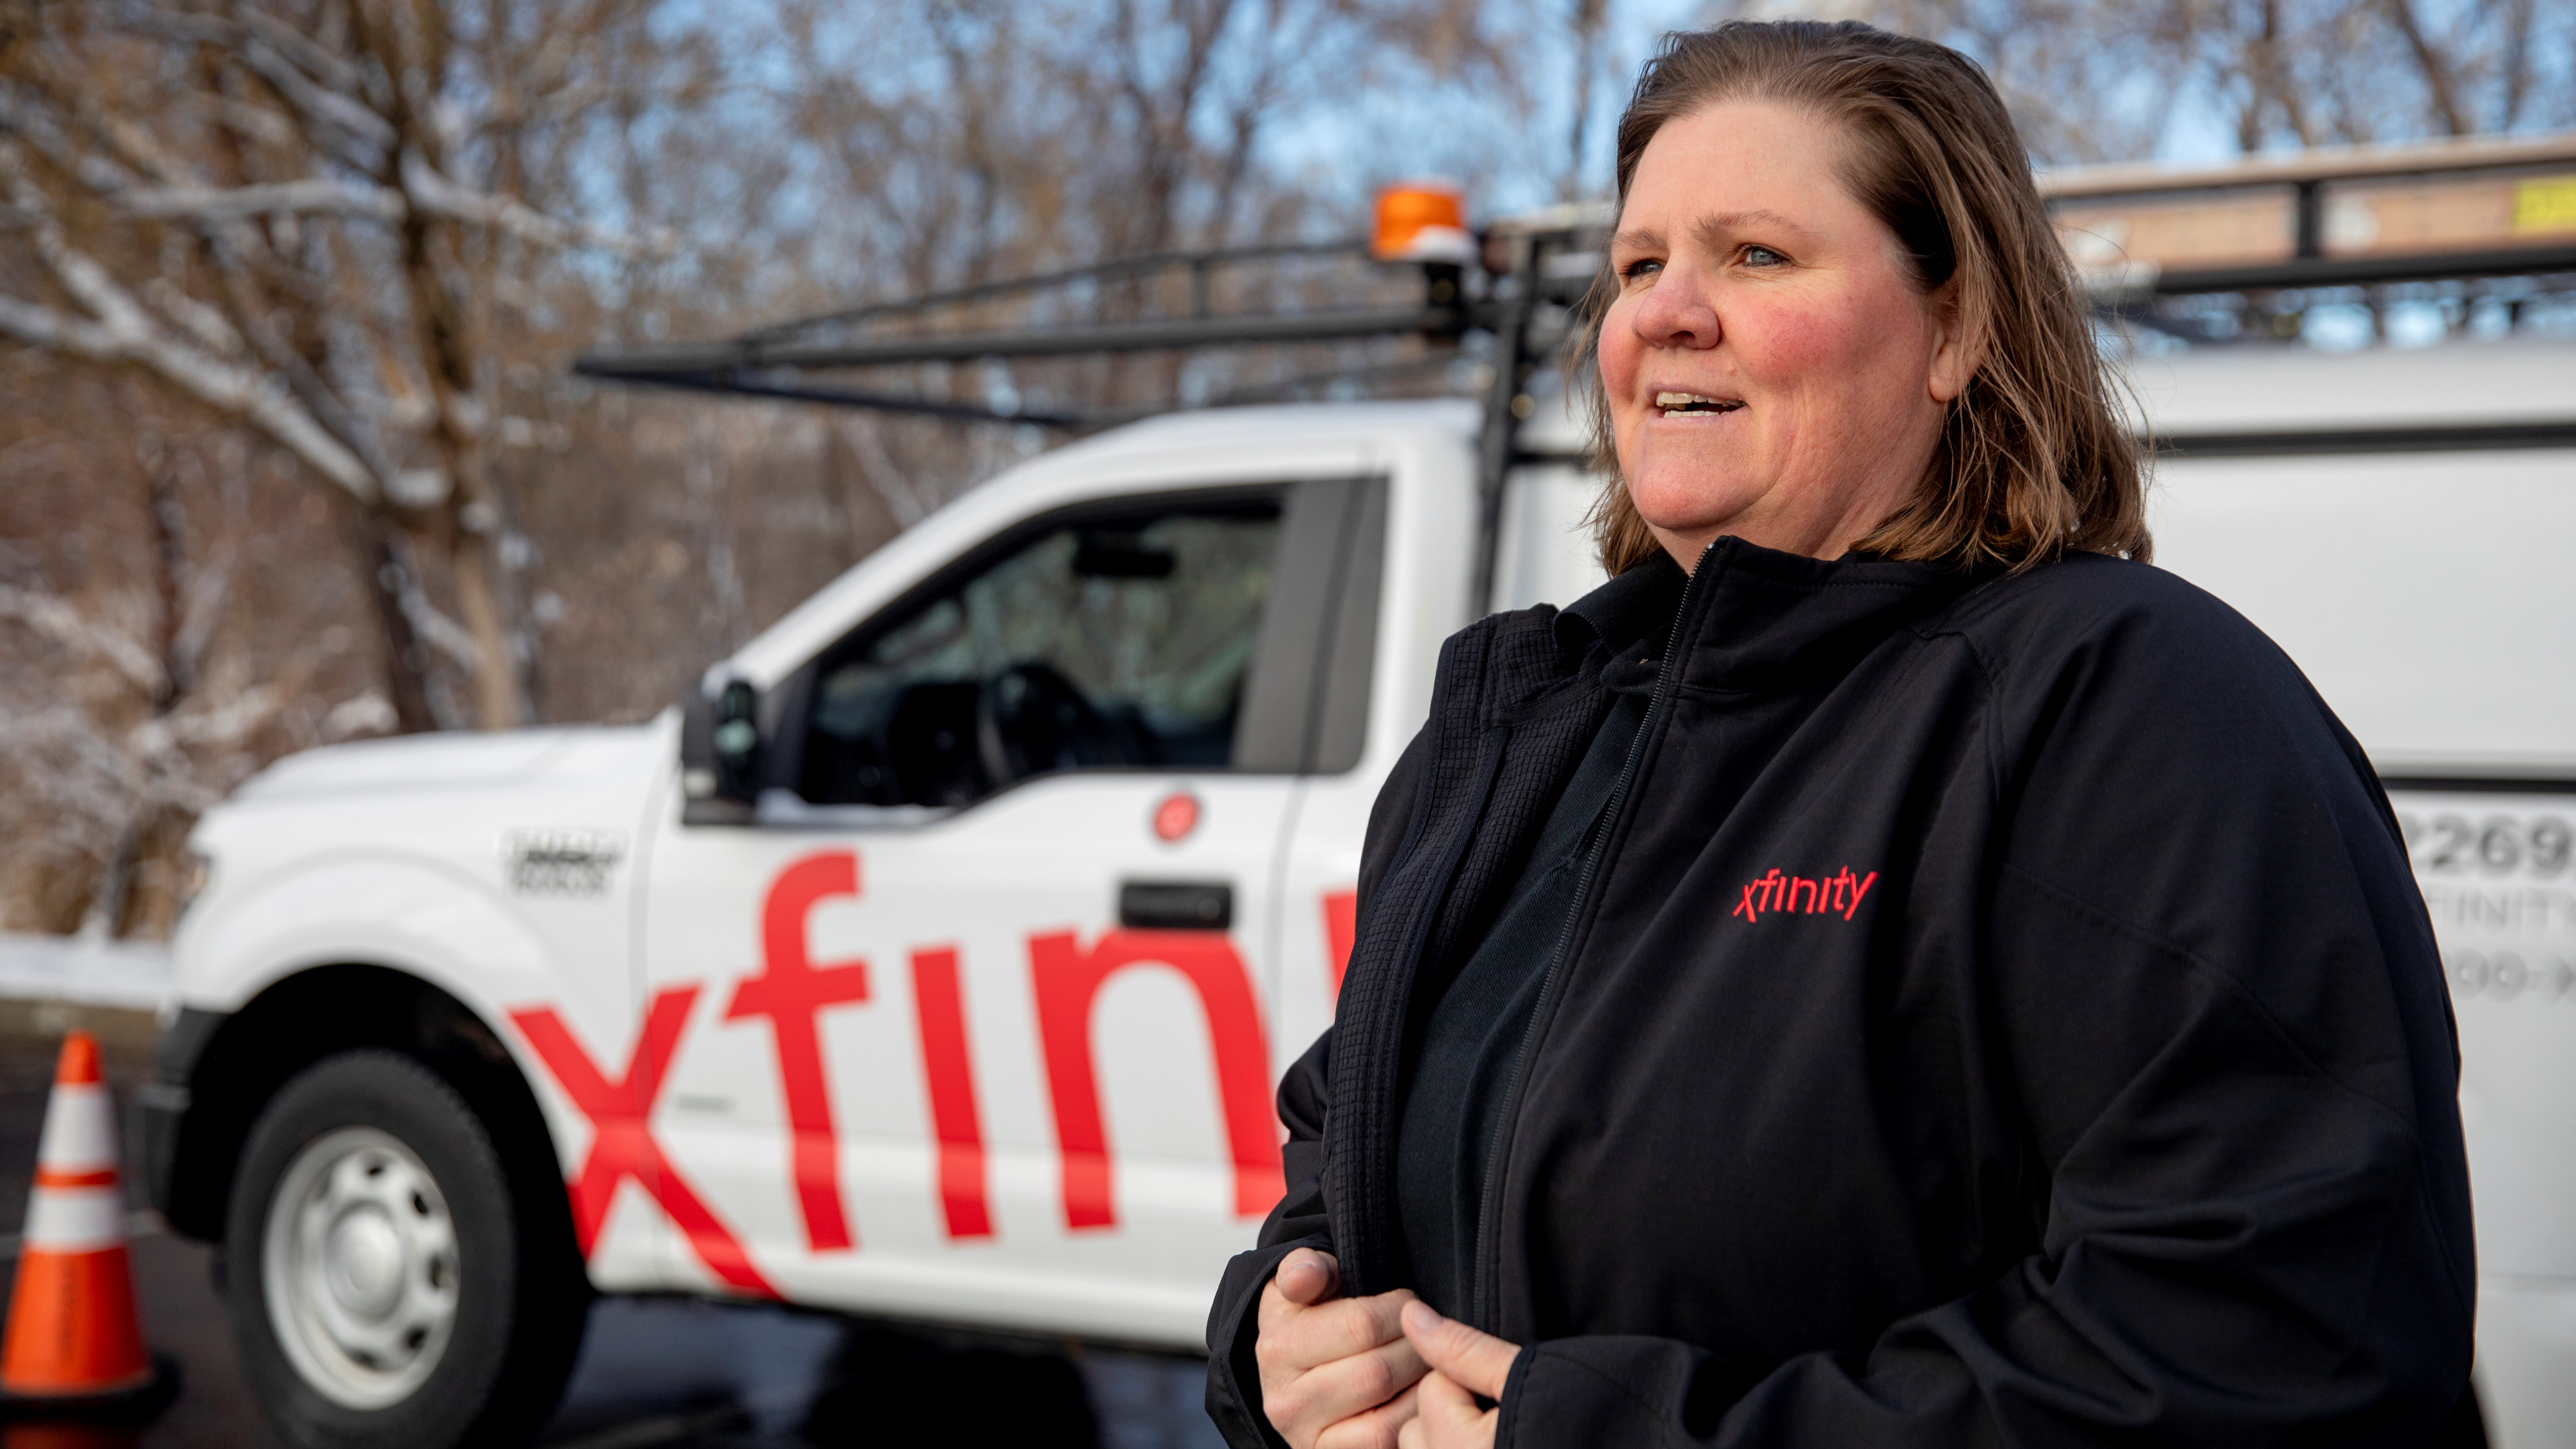 Michelle Hathenbruck stands in front of her Xfinity service van.